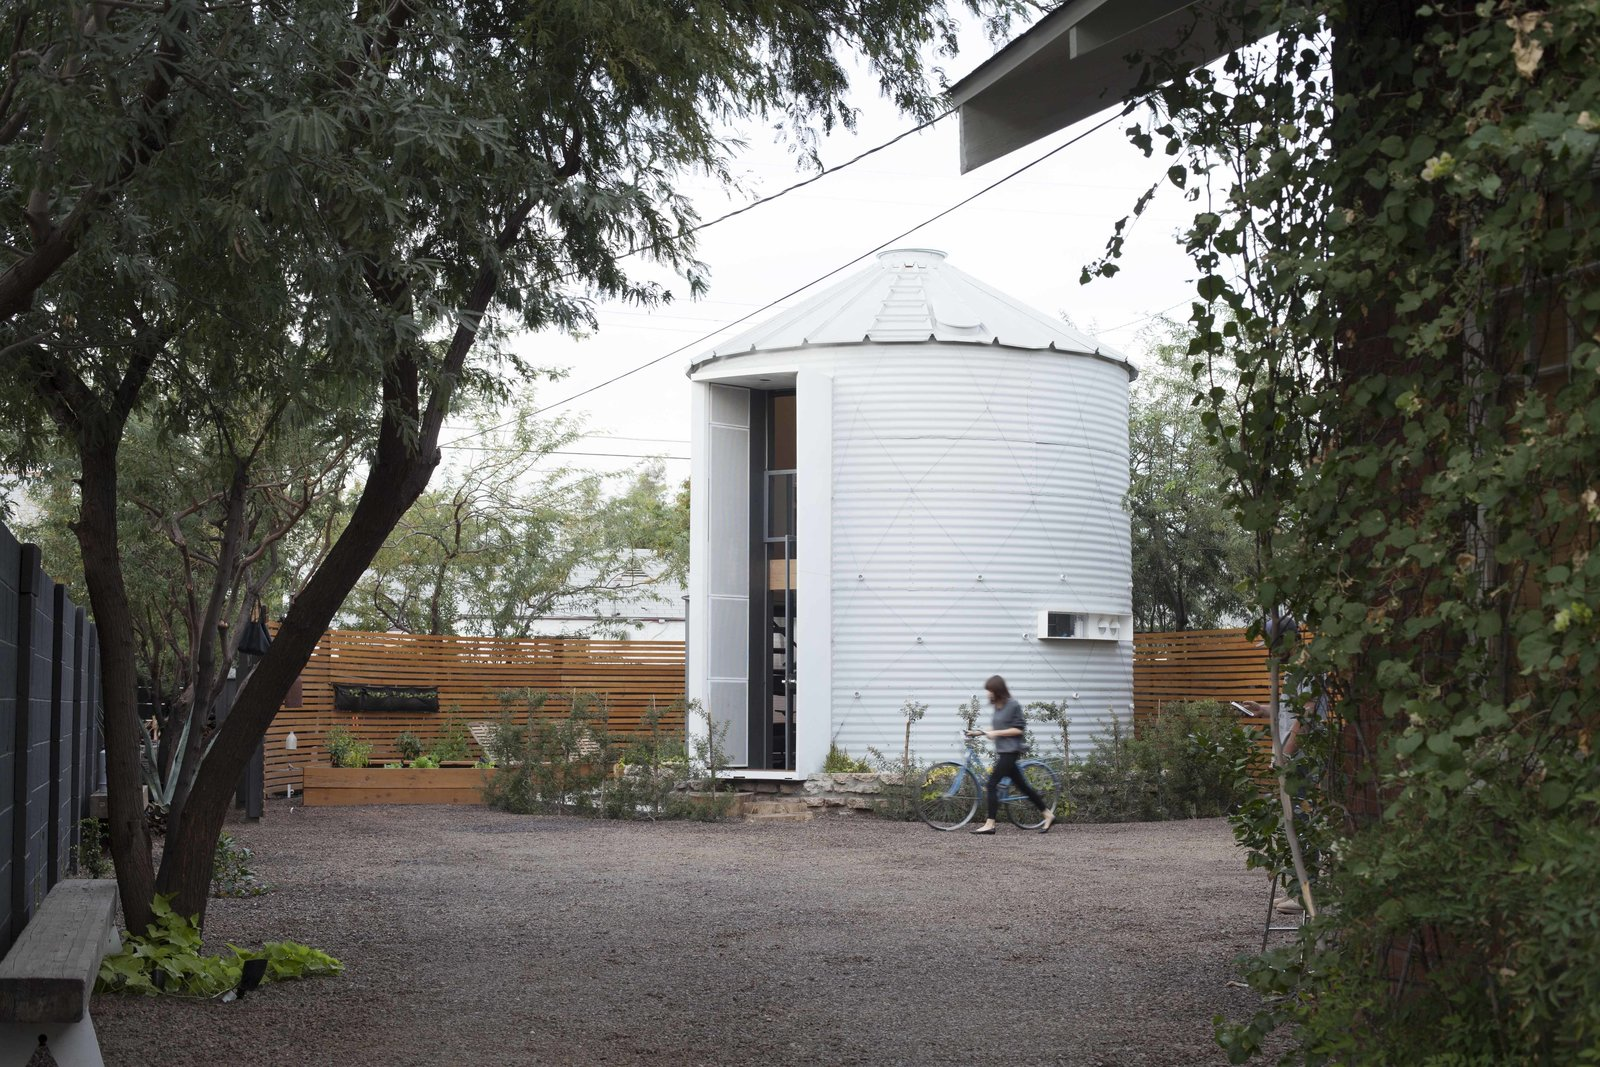 The silo was transported to Phoenix in a pickup truck. Grain silos have an oculus at the top that allows air to move through the grain; Kaiser converted that into a retractable skylight.  You Won't Believe the Cozy Home Inside This Converted Grain Silo by Allie Weiss